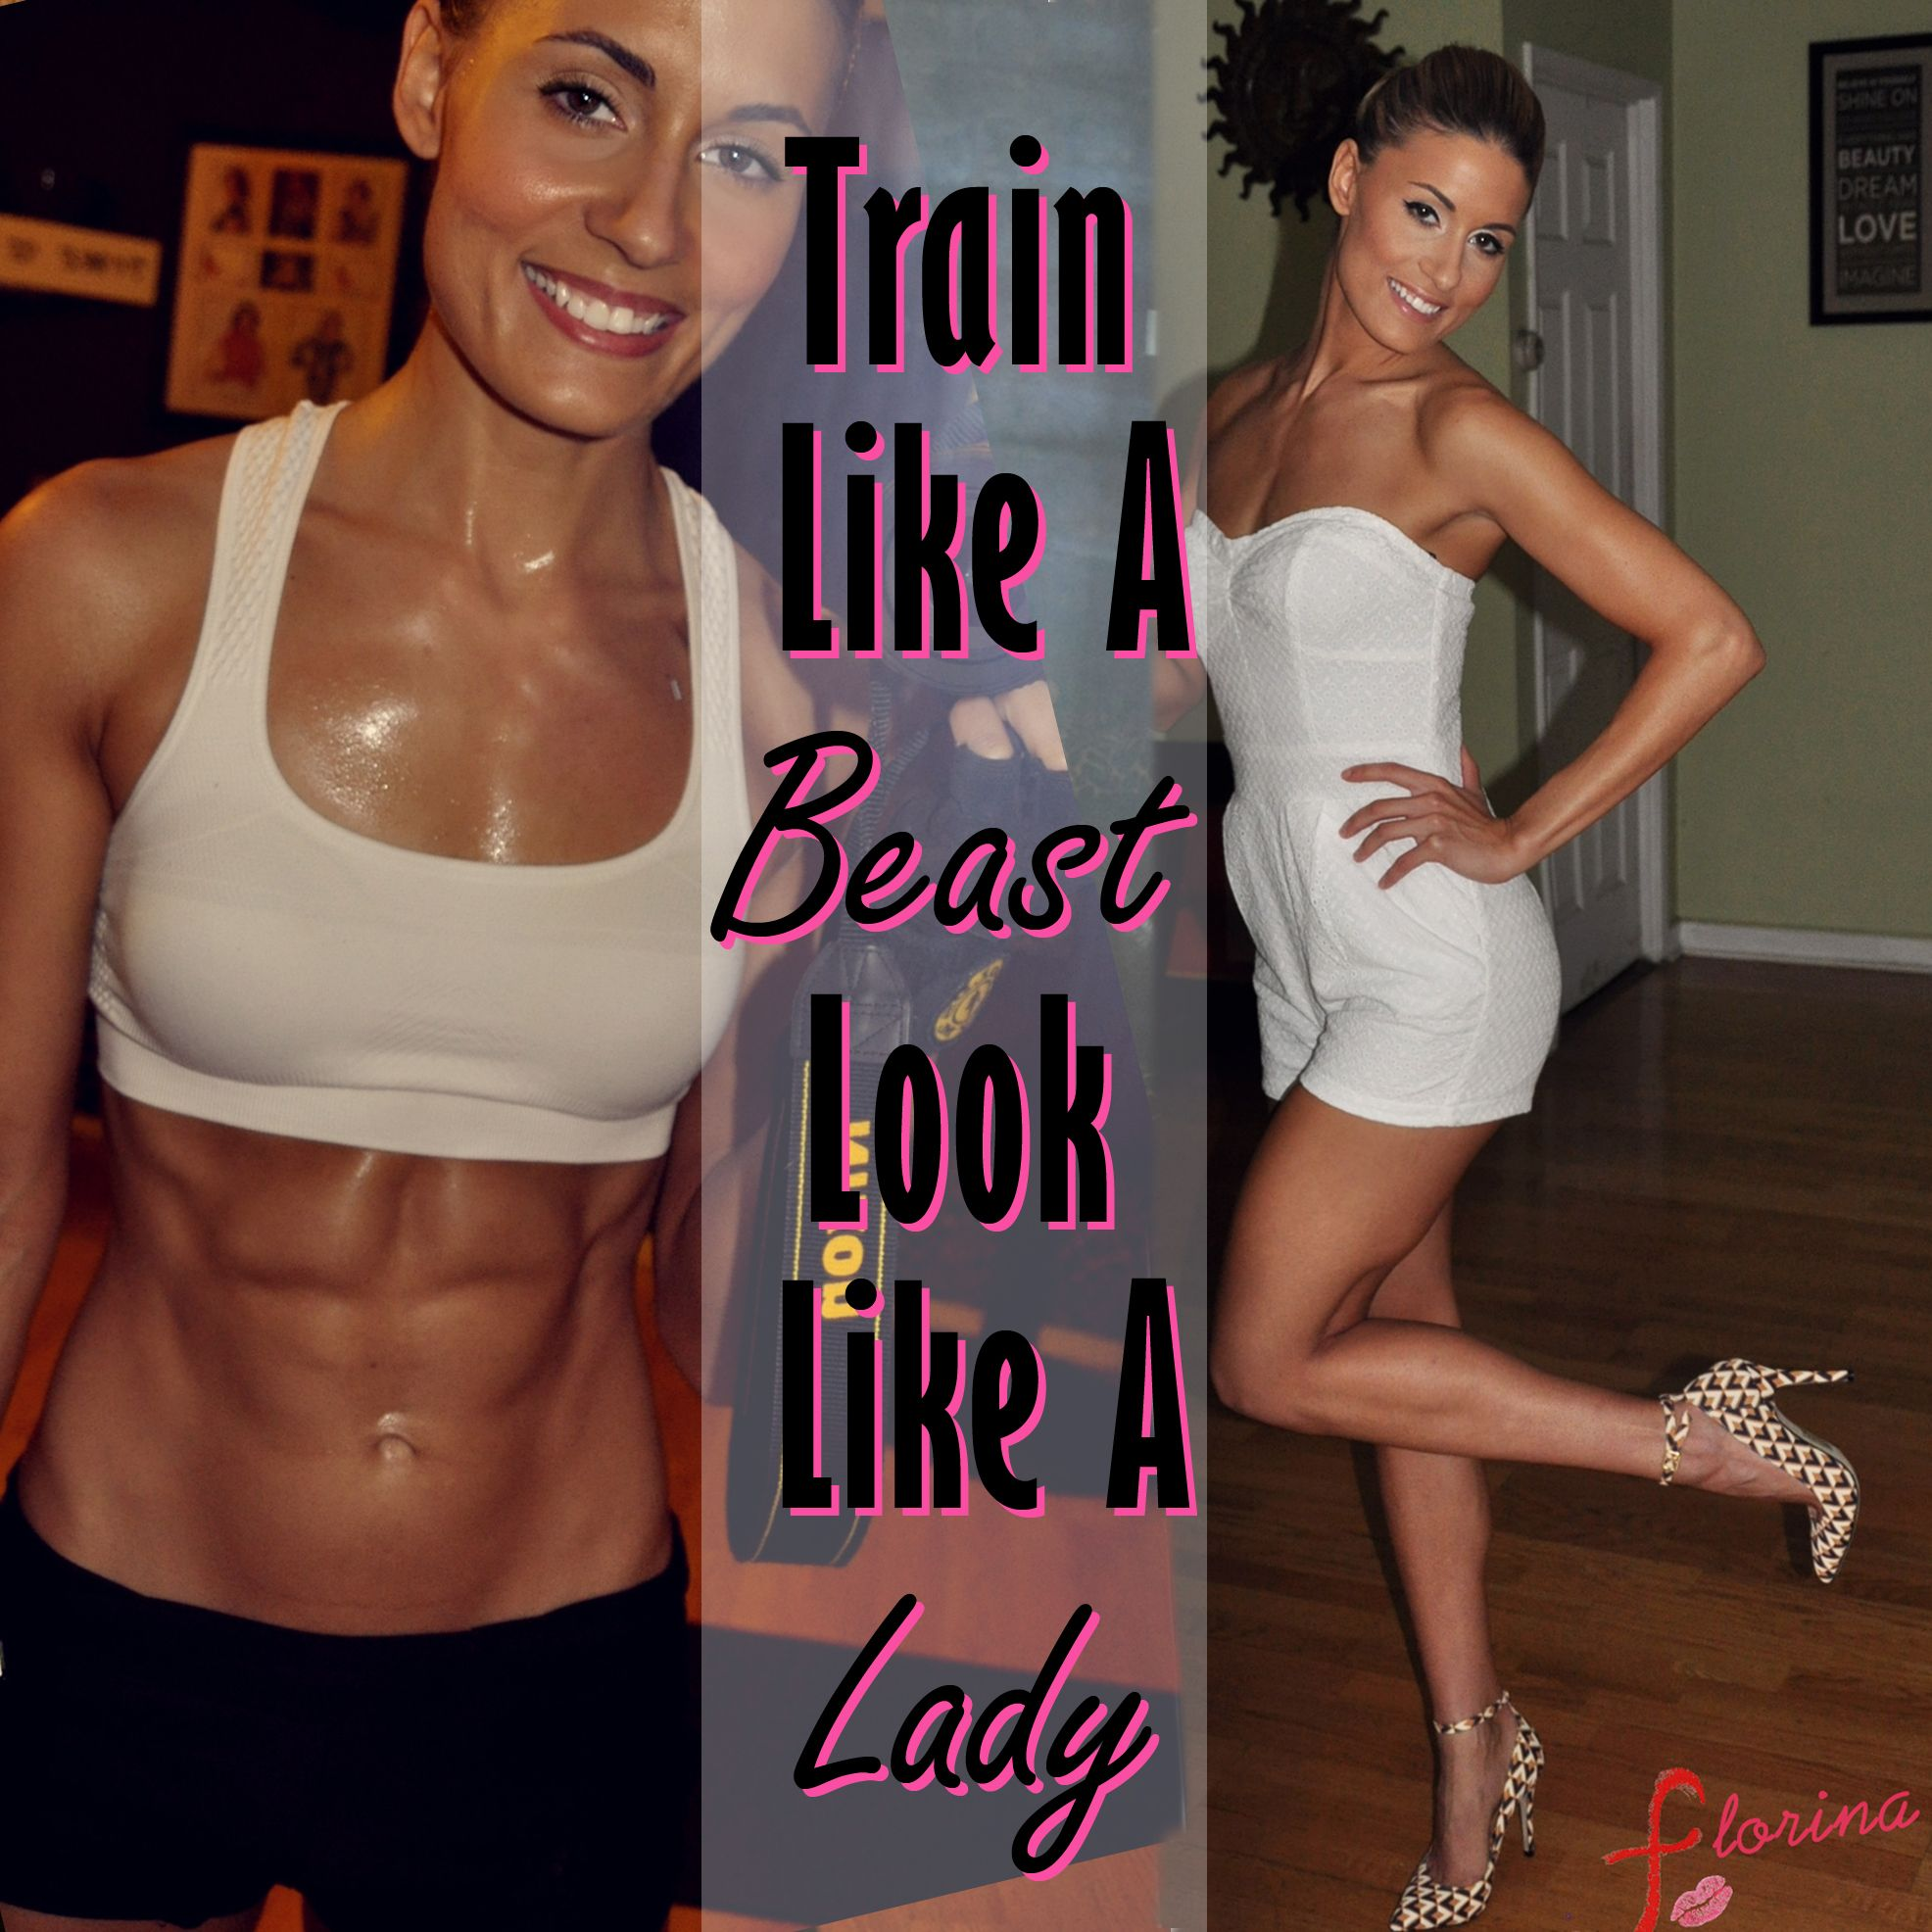 Fact Lifting Heavy Weights Will Not Make You Look Act Or